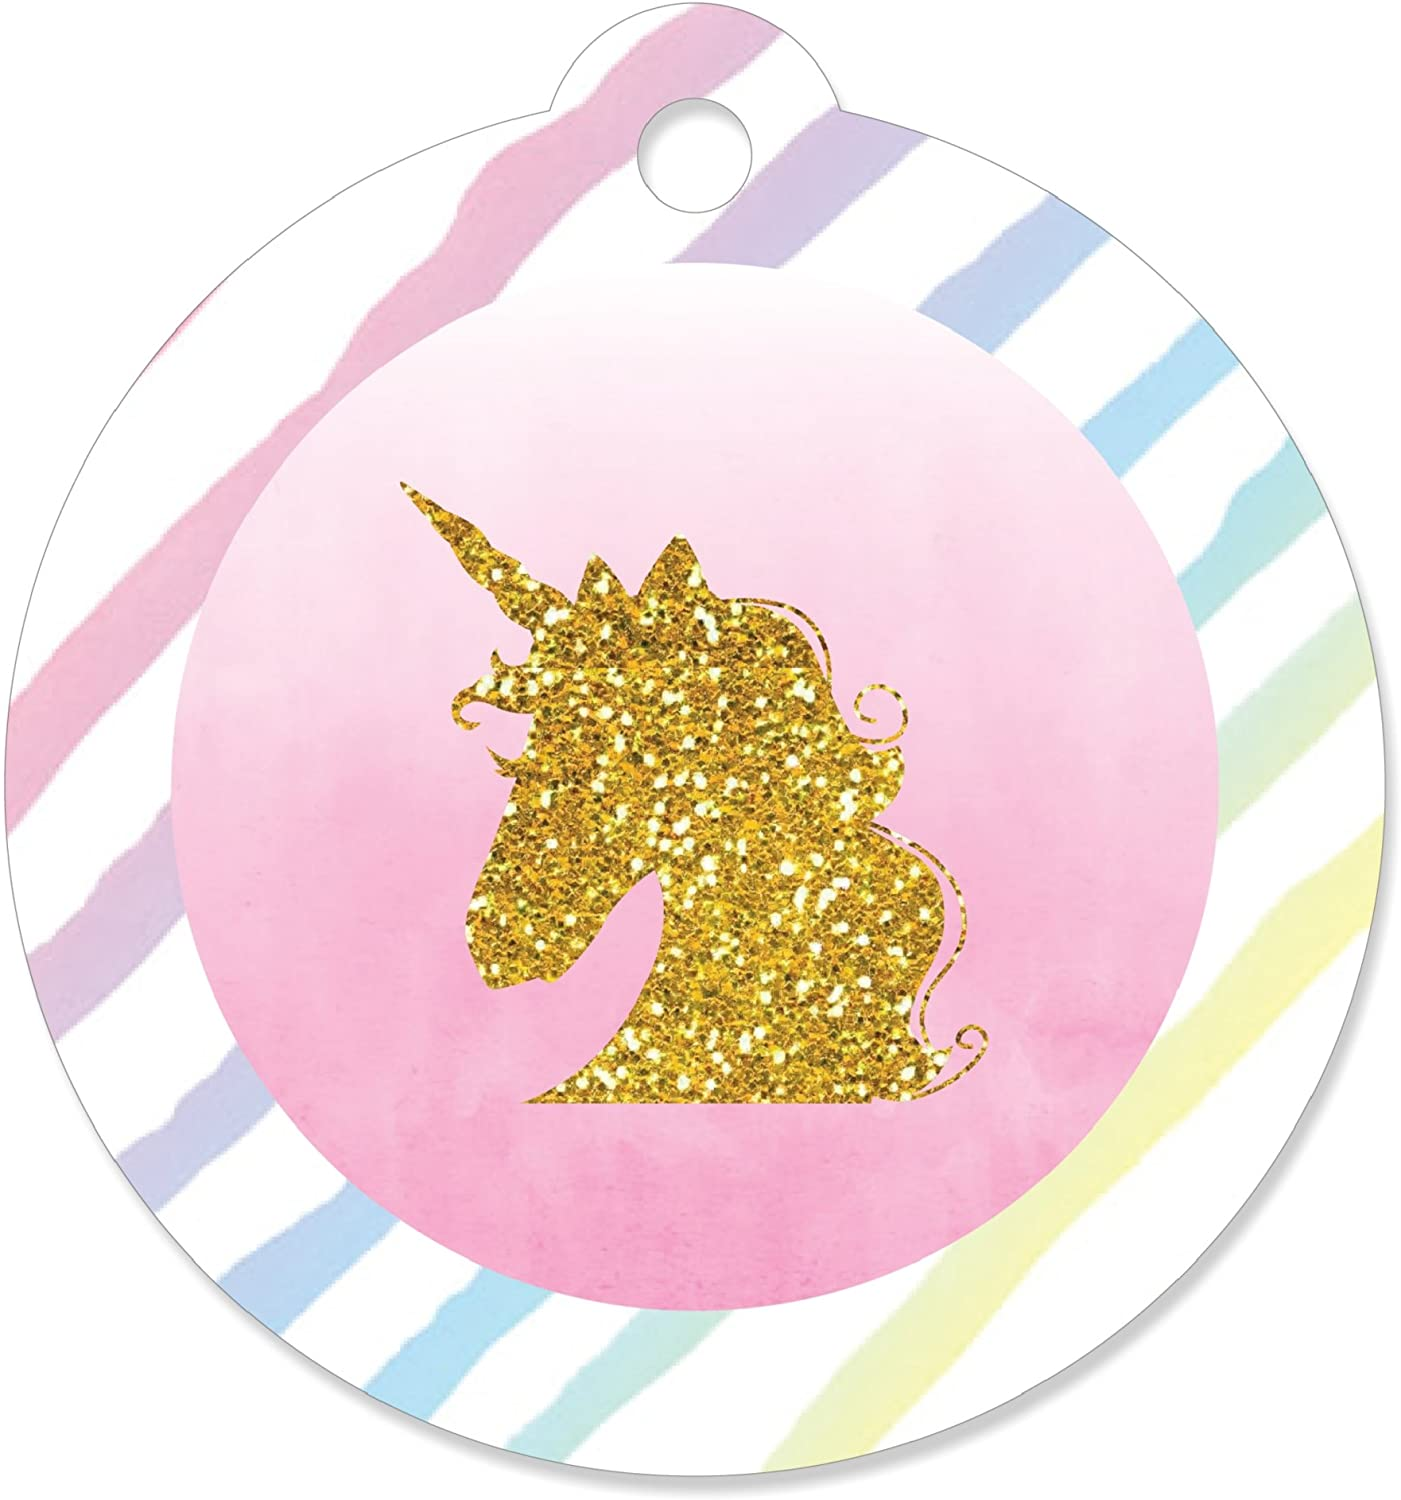 Rainbow Unicorn - Magical Unicorn Baby Shower or Birthday Party Favor Gift Tags (Set of 20)